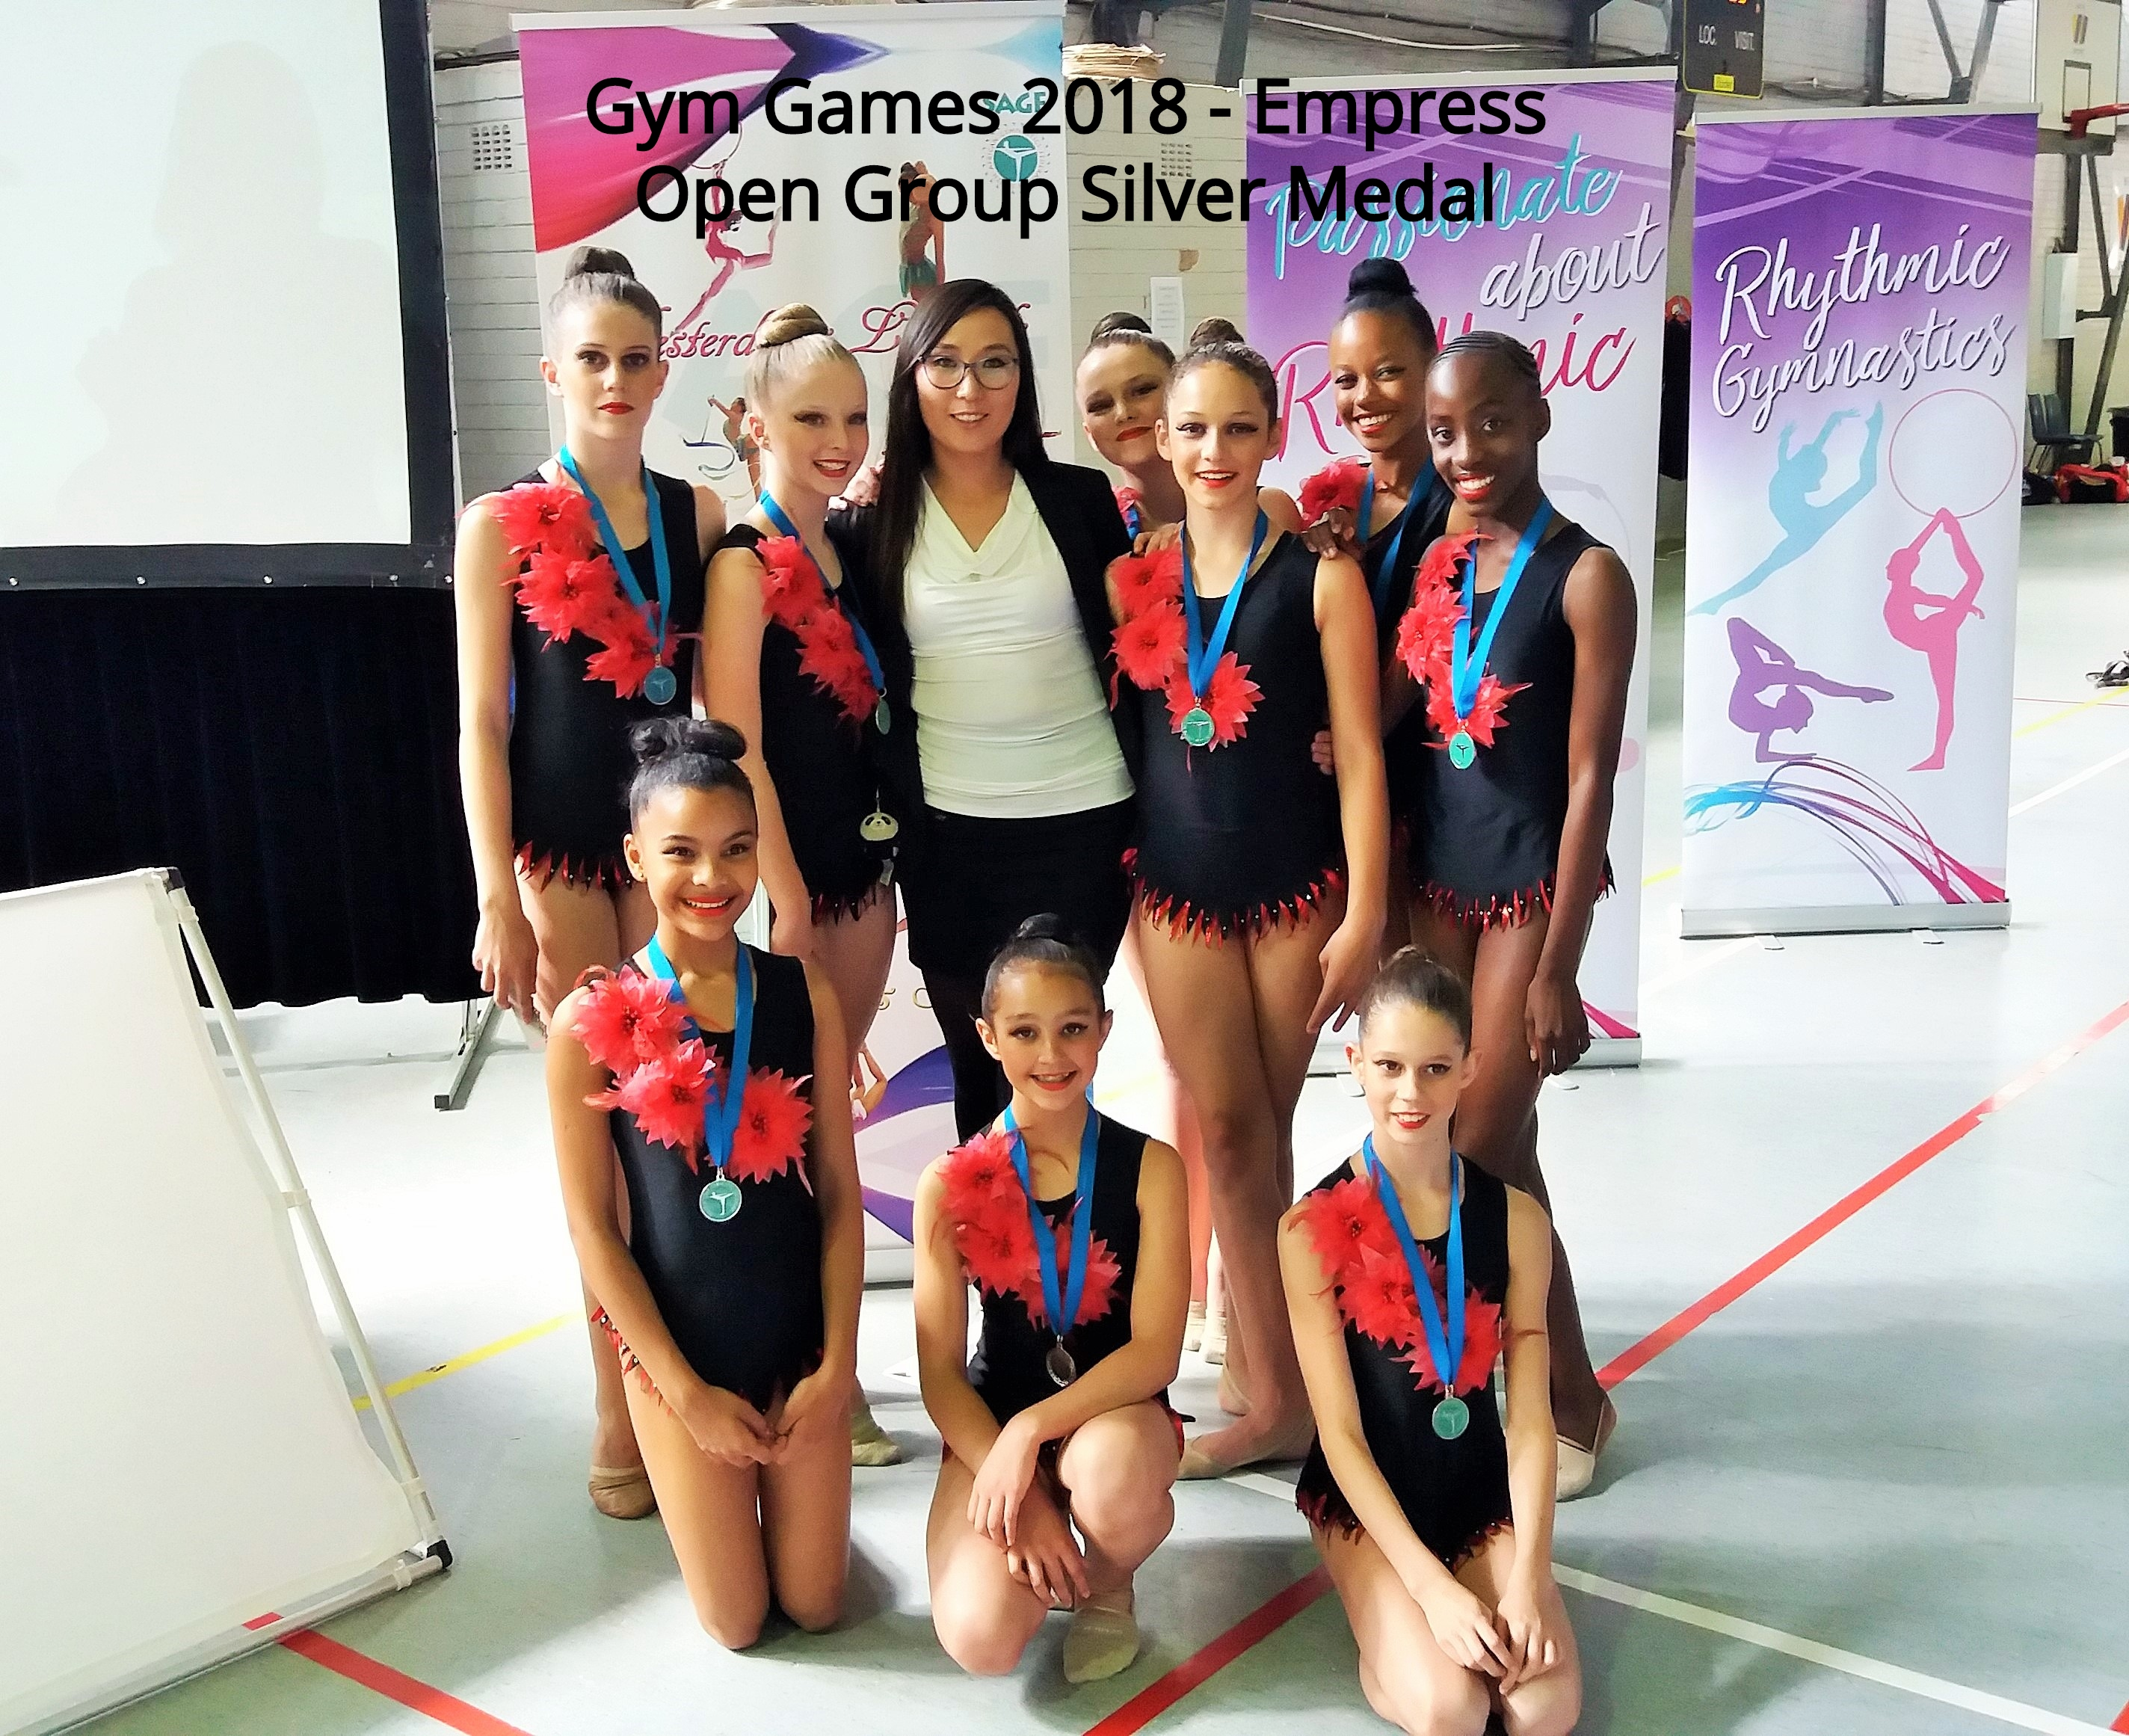 Gym Games 2018 - Silver Medal Empress Open Group